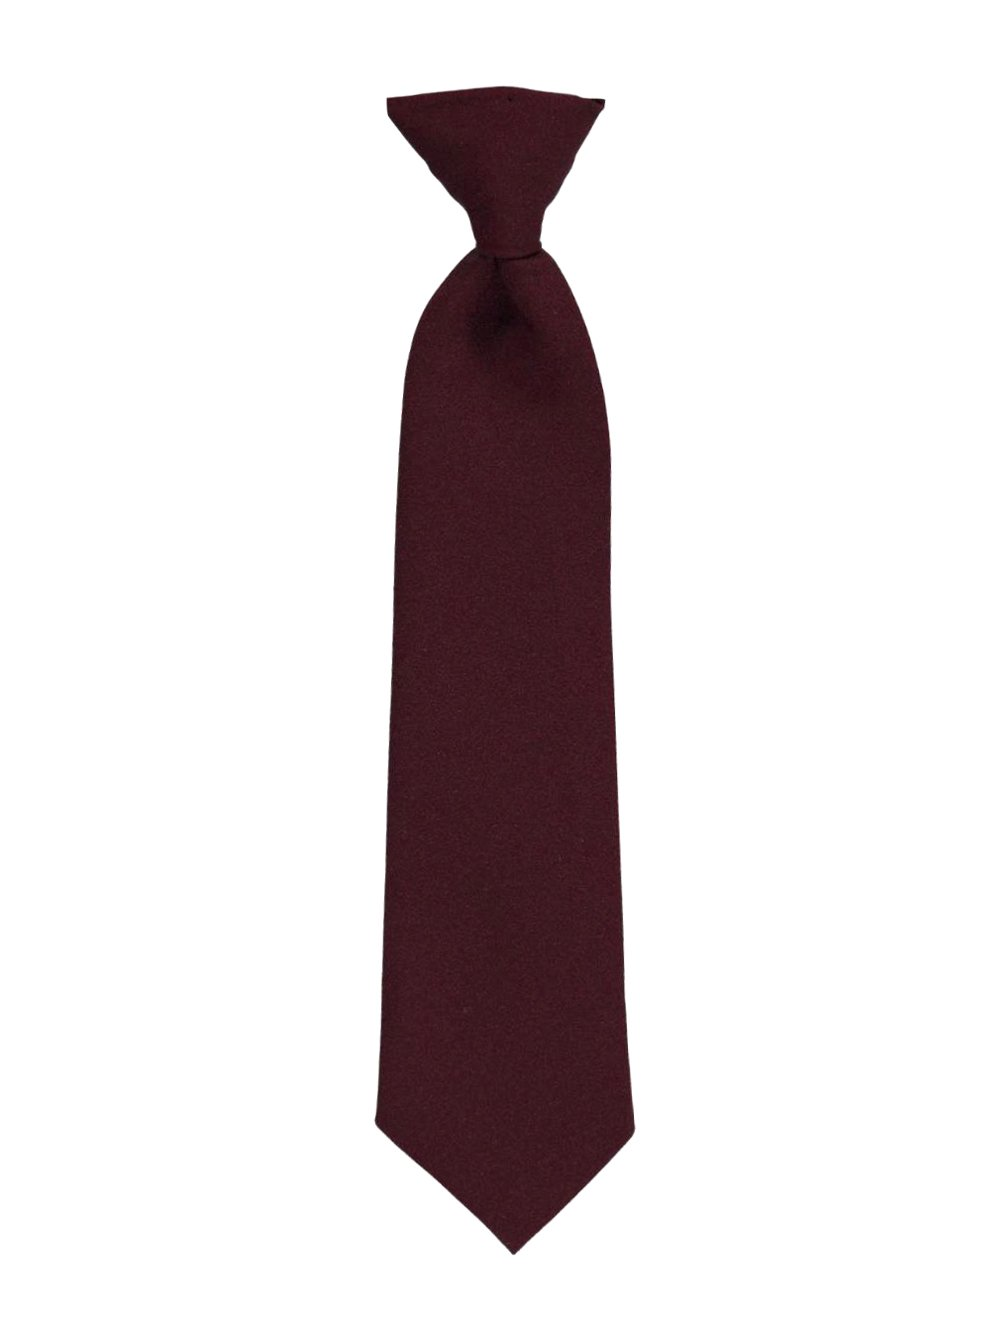 Cookie's Brand Clip-on Tie - burgundy, 12 12 Cookie's Brand